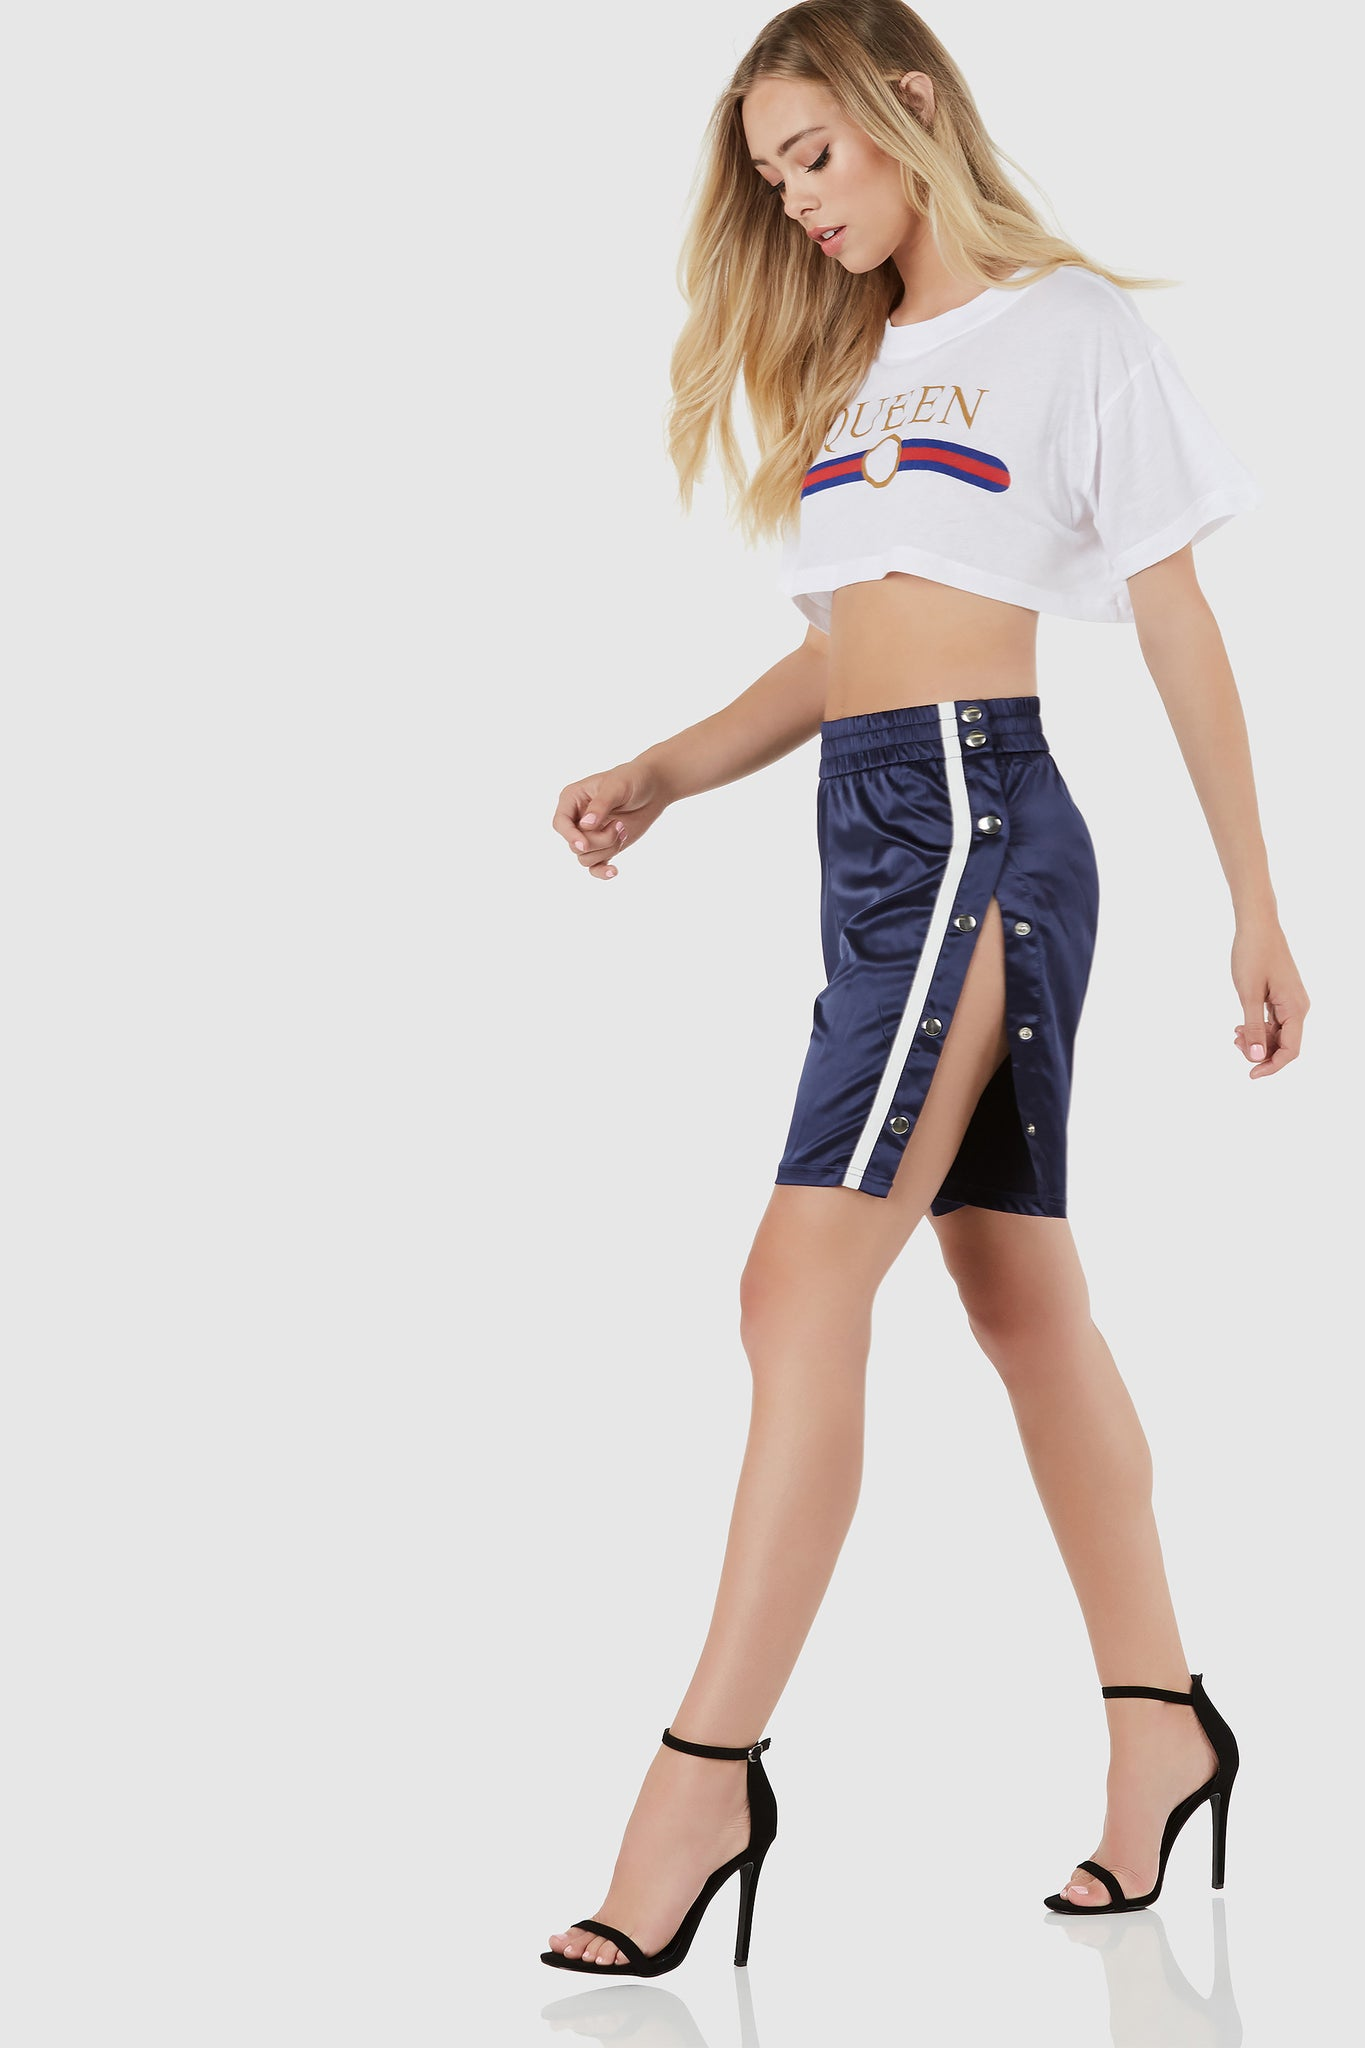 Trendy basketball shorts with contrast stripe pattern down each side. Snap button detailing with comfortable elasticied waist.